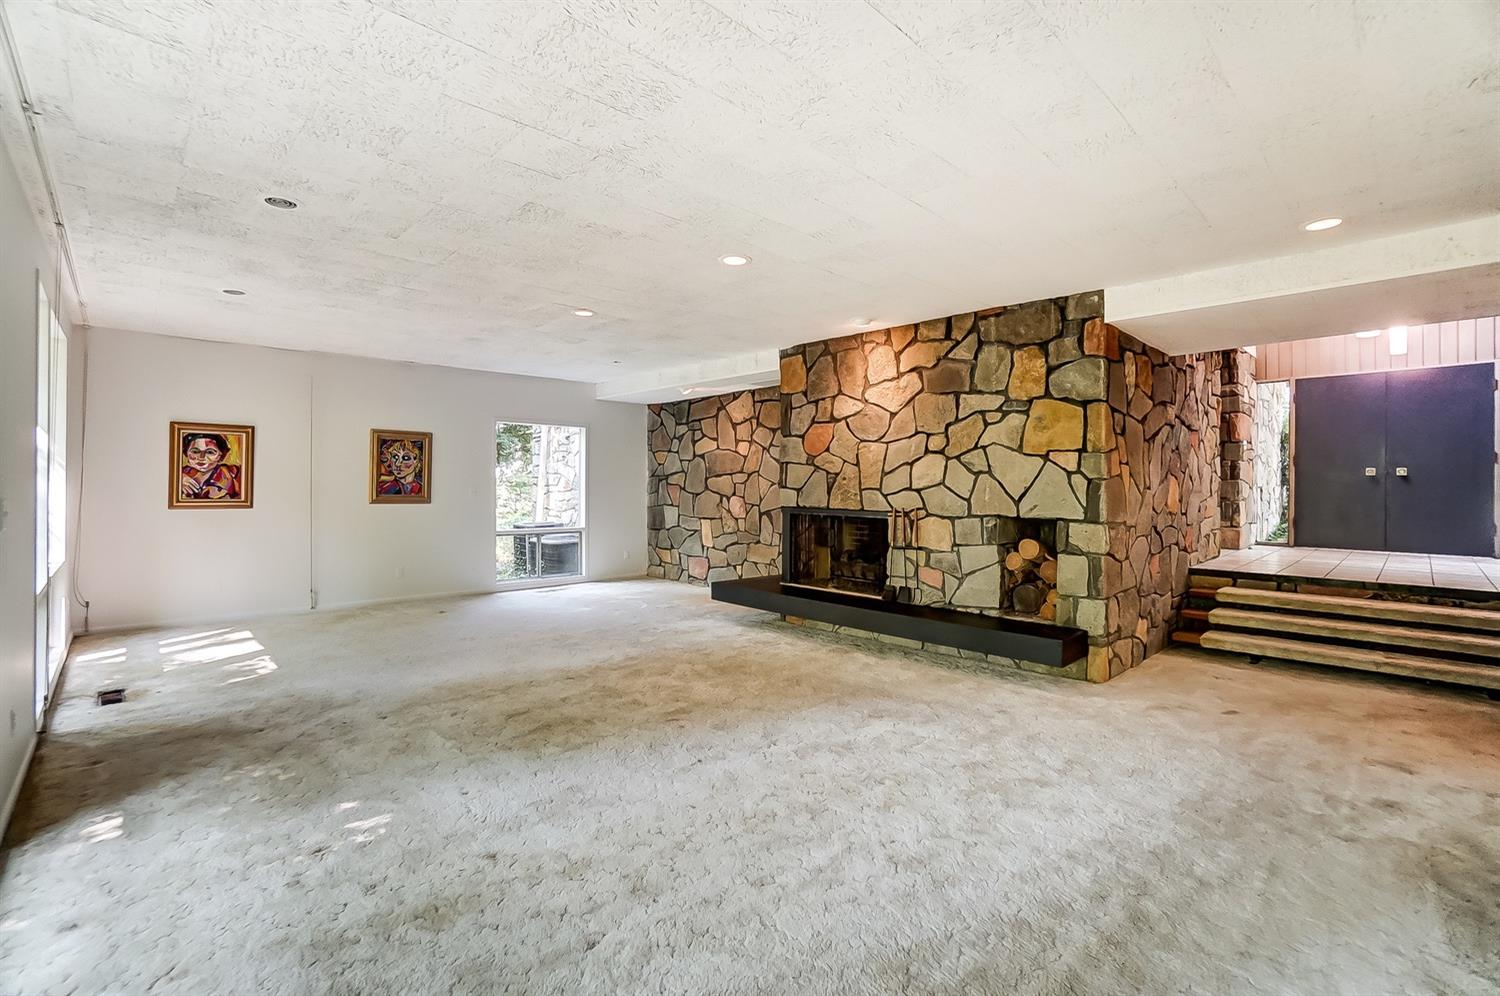 A view of the living area's dramatic stone fireplace. Several examples of artwork by the late Gwen Doppler, the home's owner, are featured throughout the home.